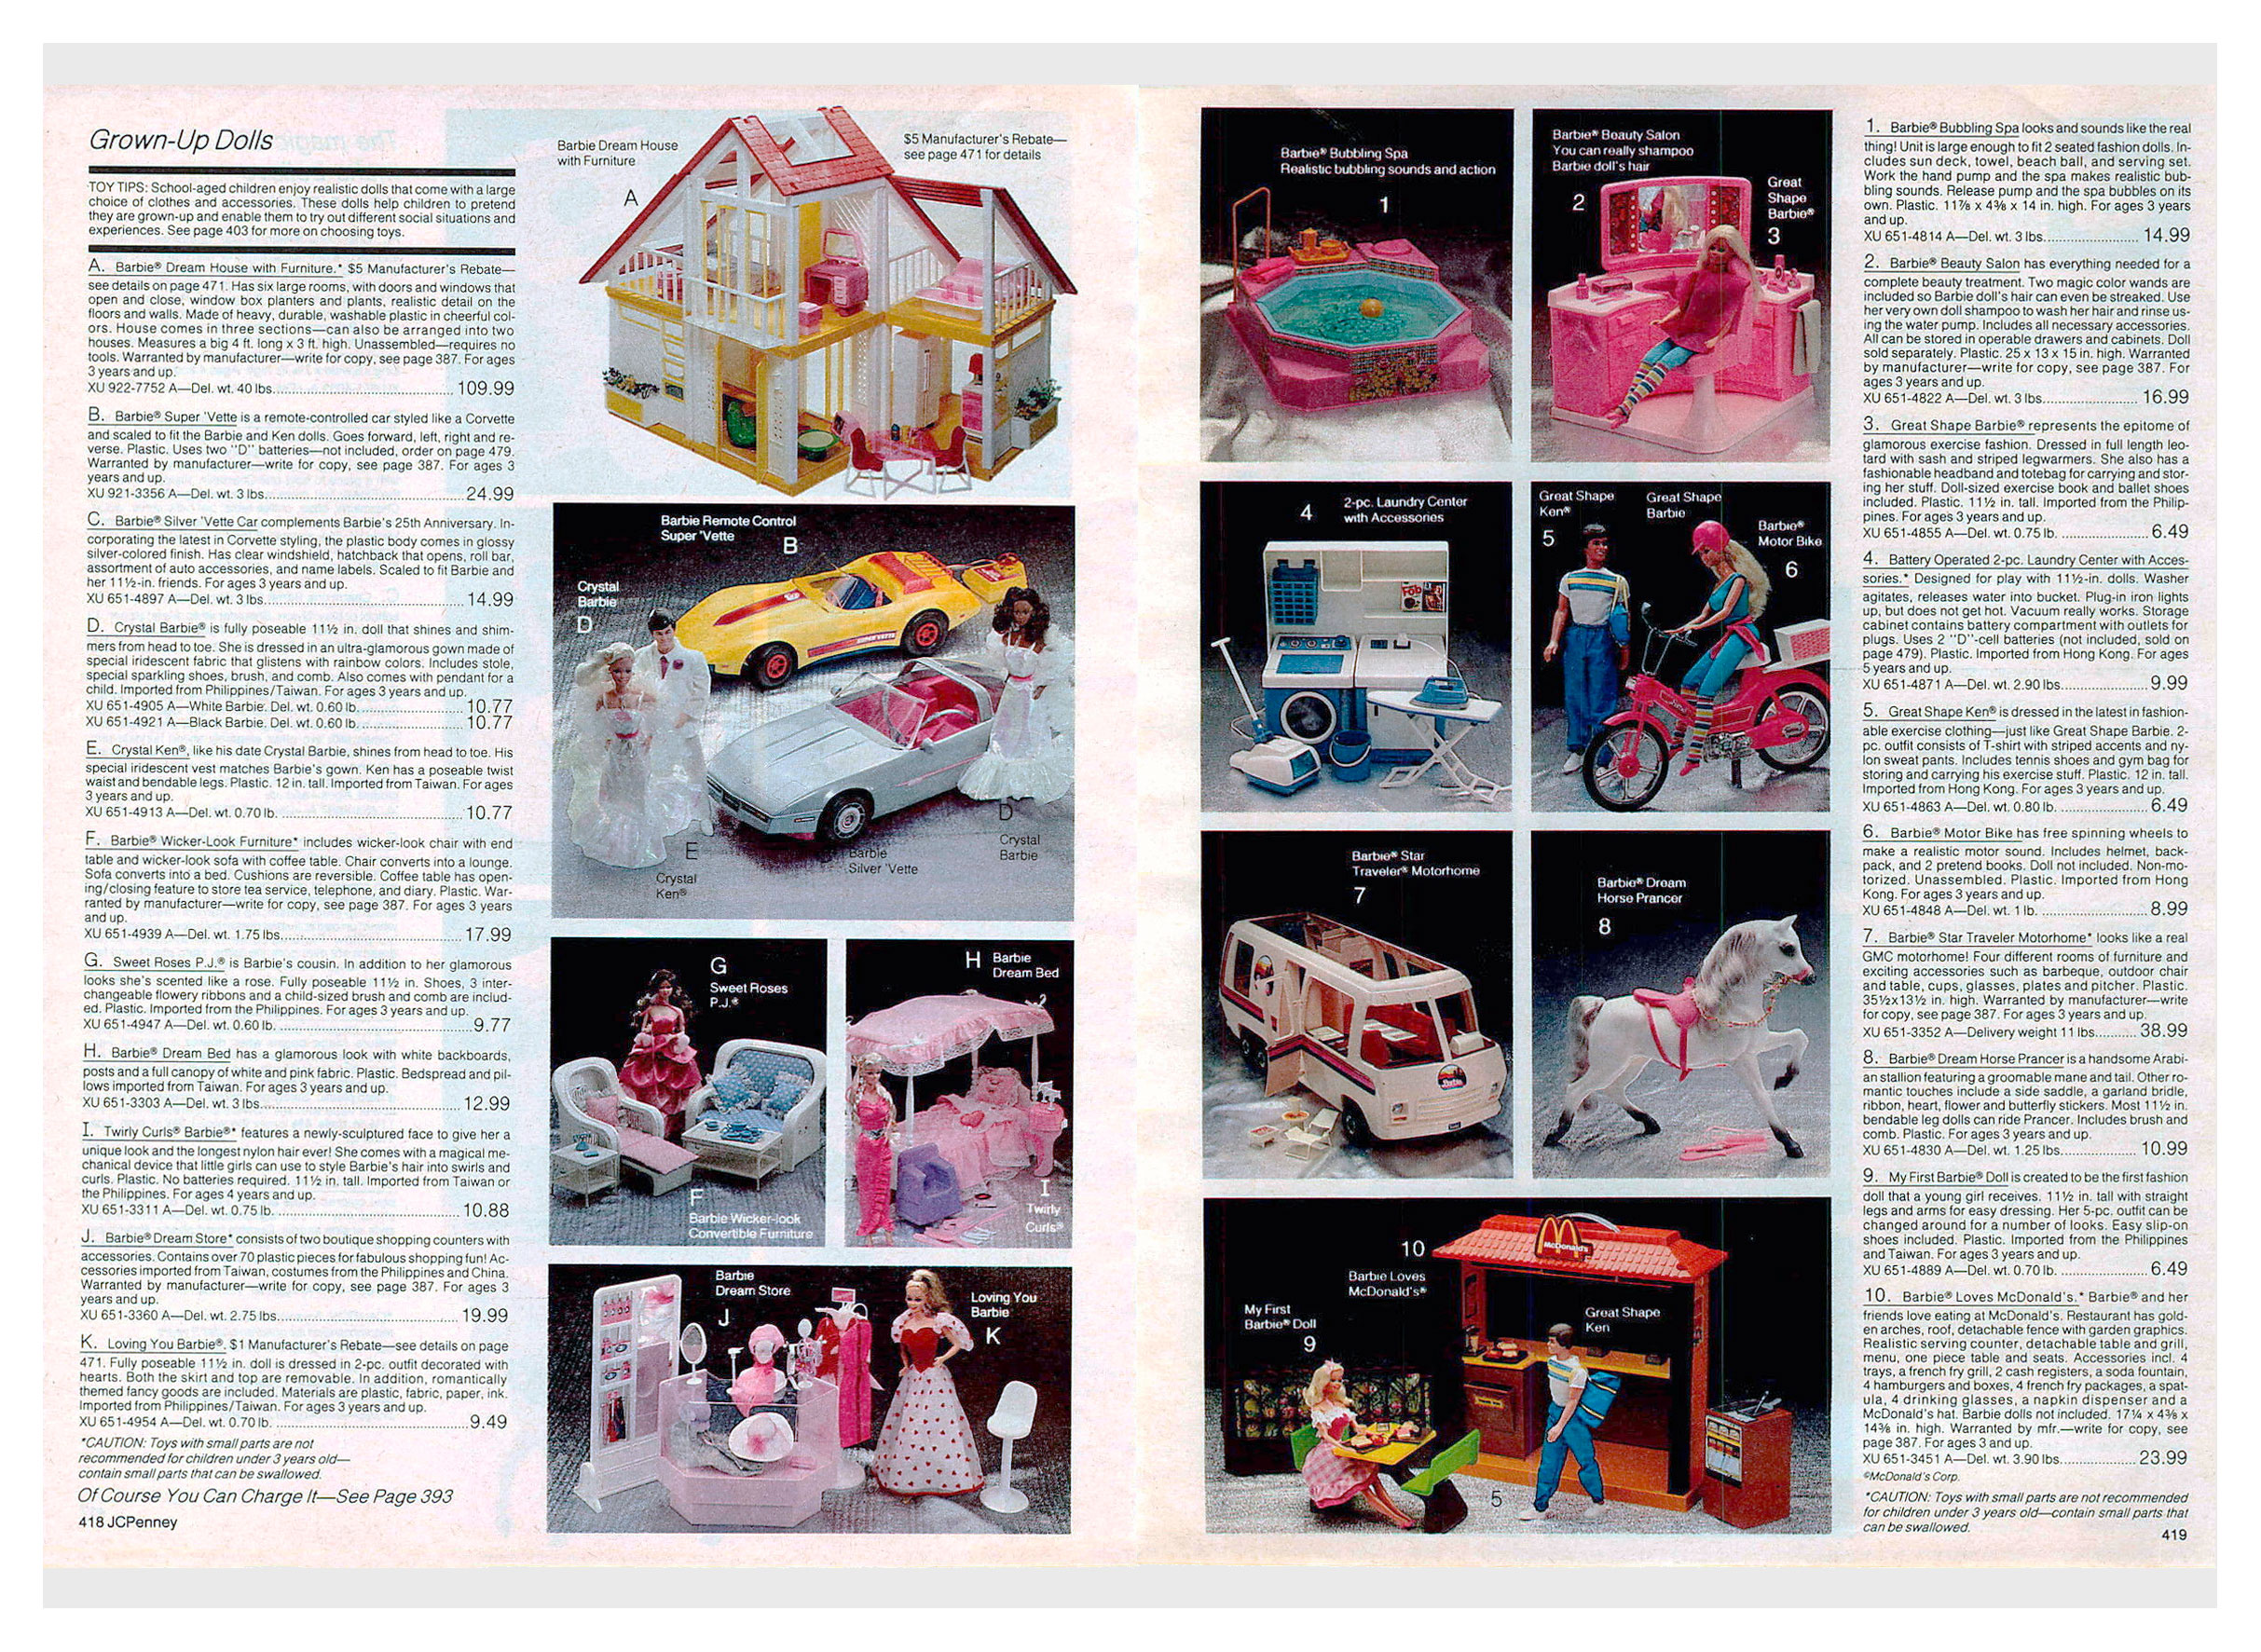 From 1984 JCPenney Christmas catalogue